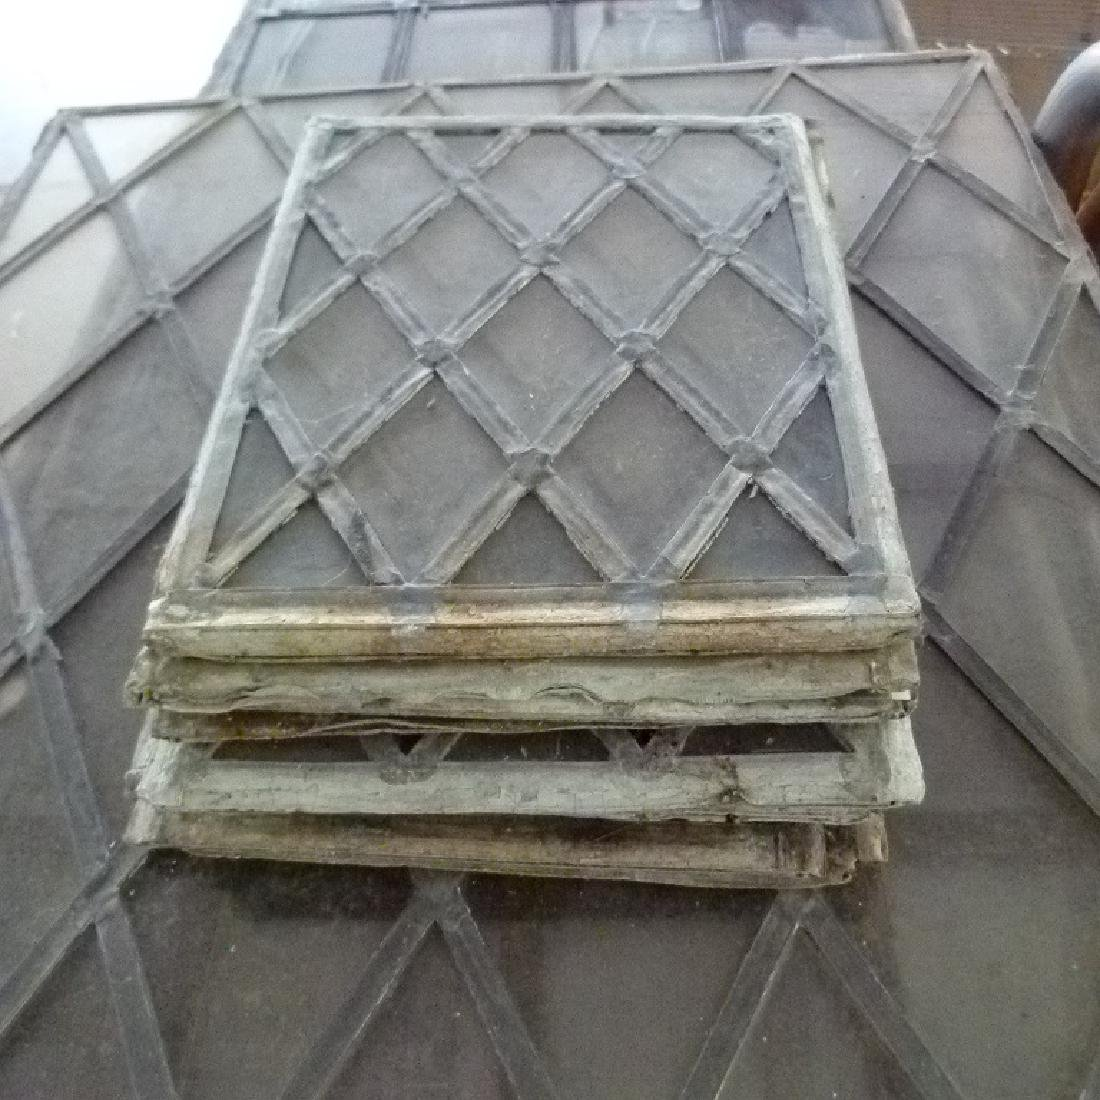 LOT ASSORT. MISSION STYLE LEADED GLASS WINDOWS - 7